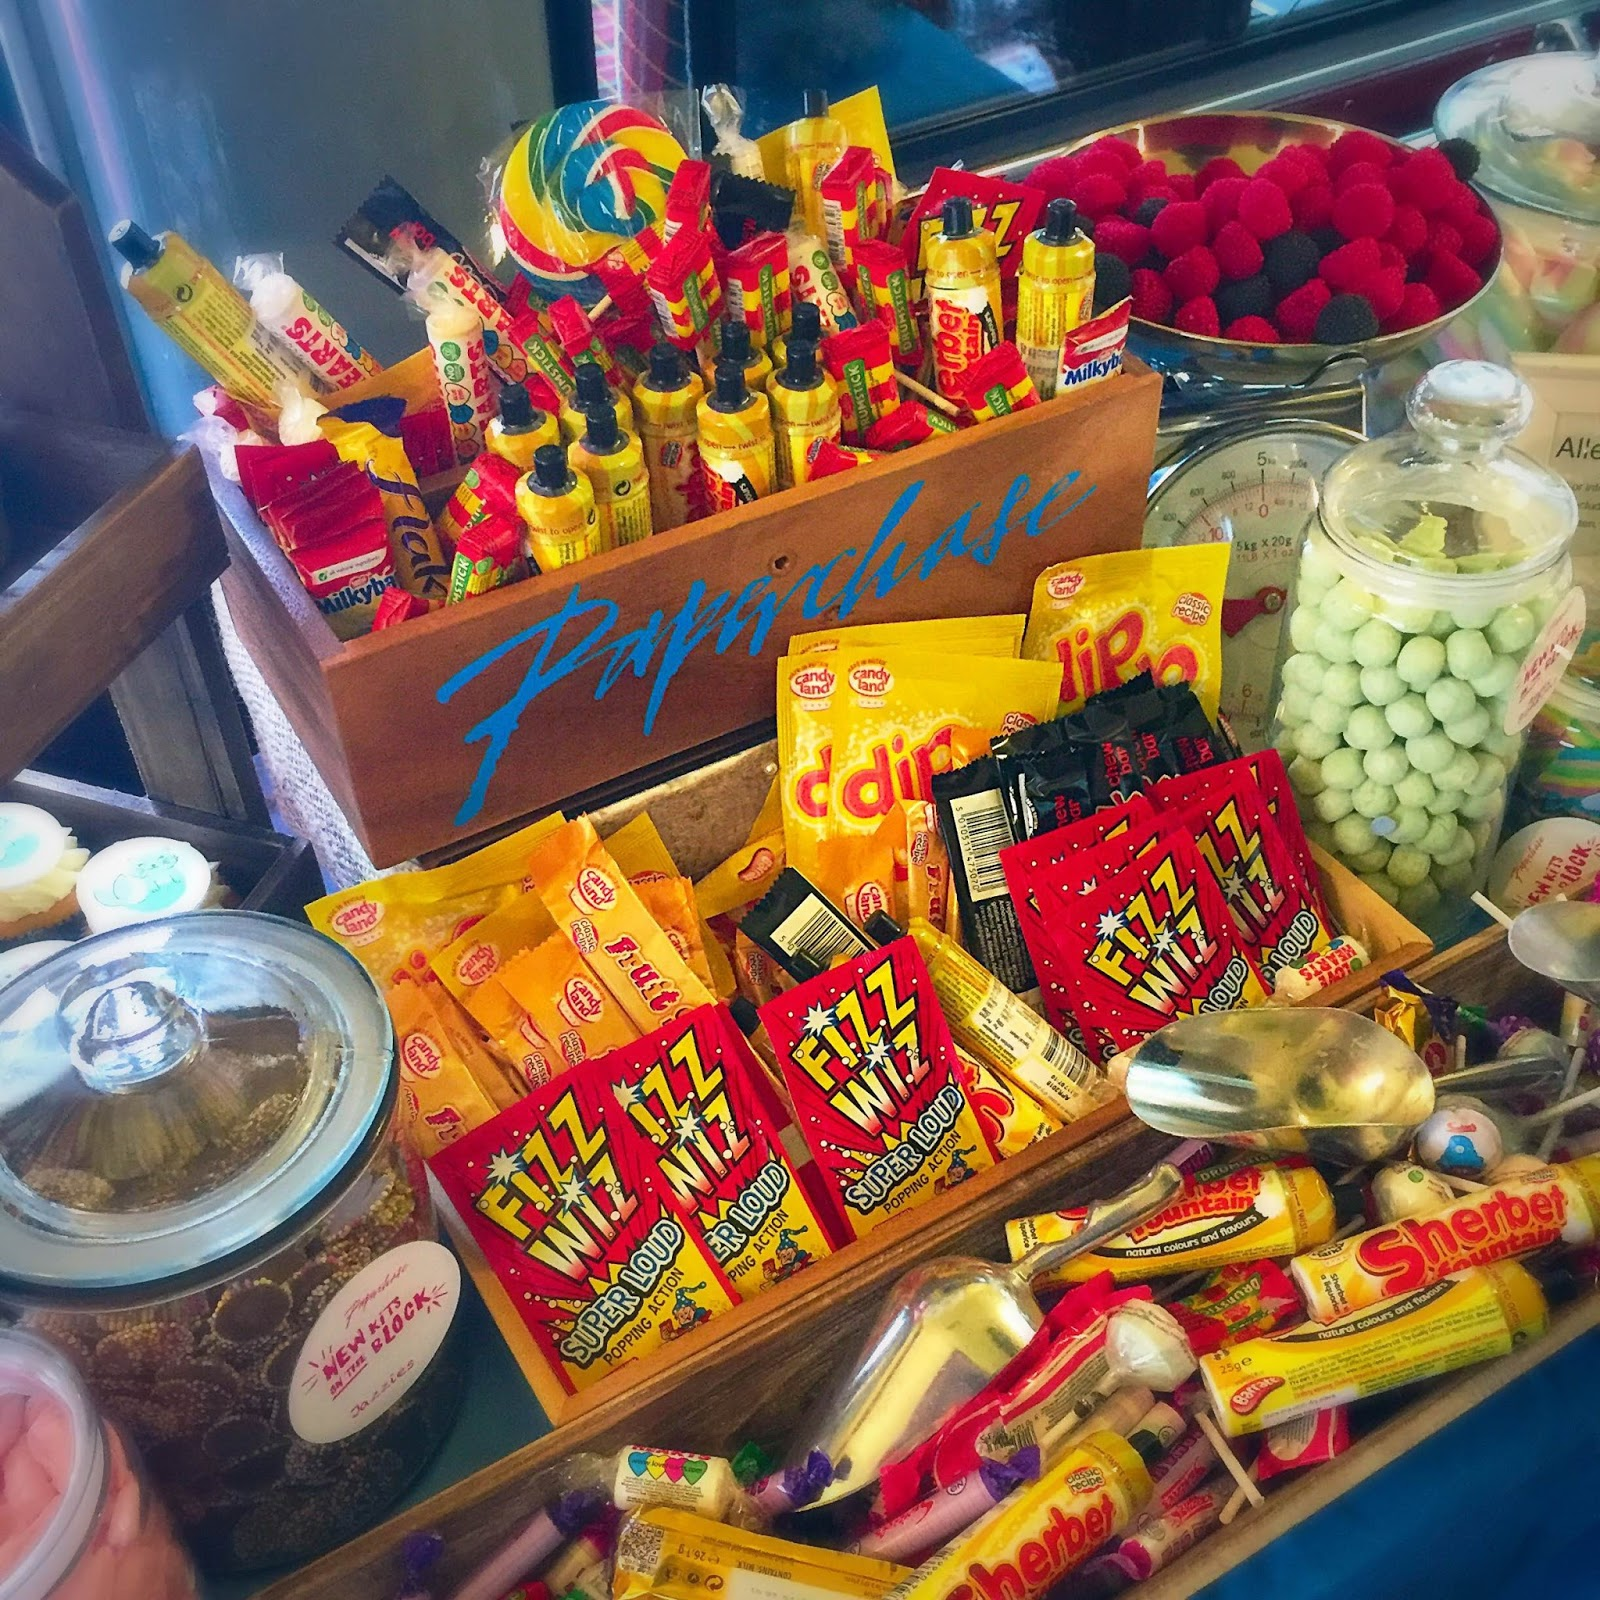 retro sweets and old skool candy bar